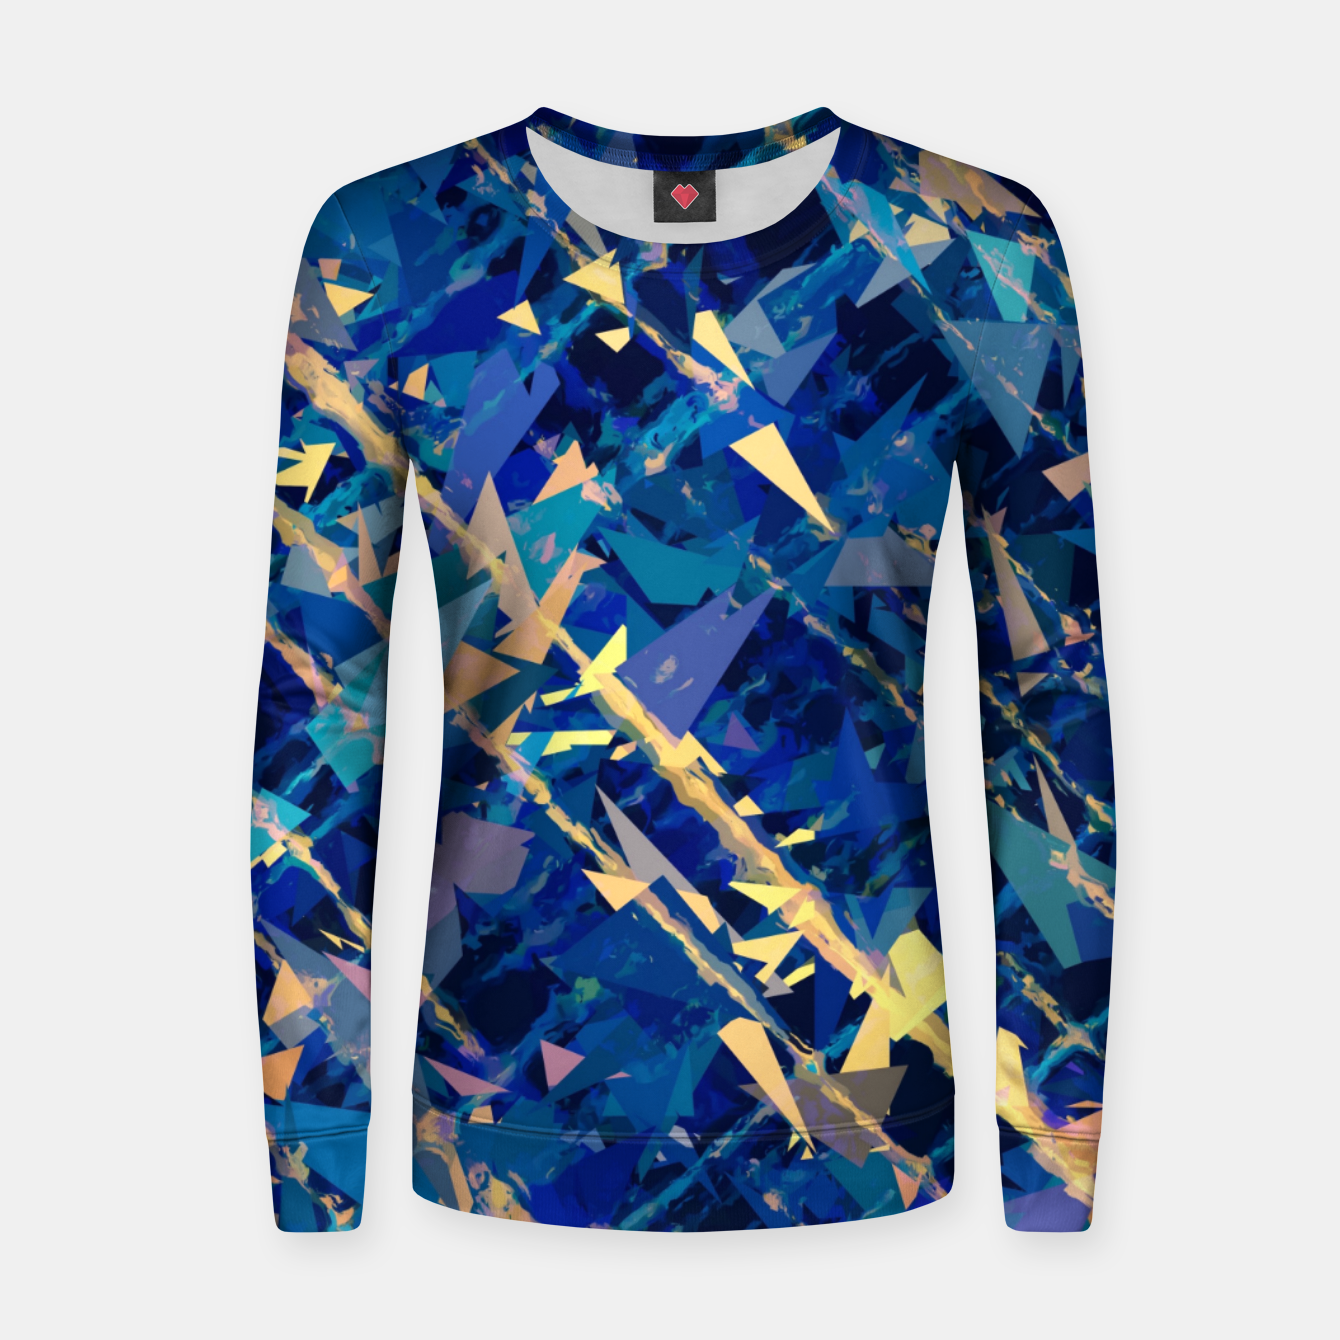 8d58786298a5 splash geometric triangle pattern abstract background in blue and yellow  Women sweater